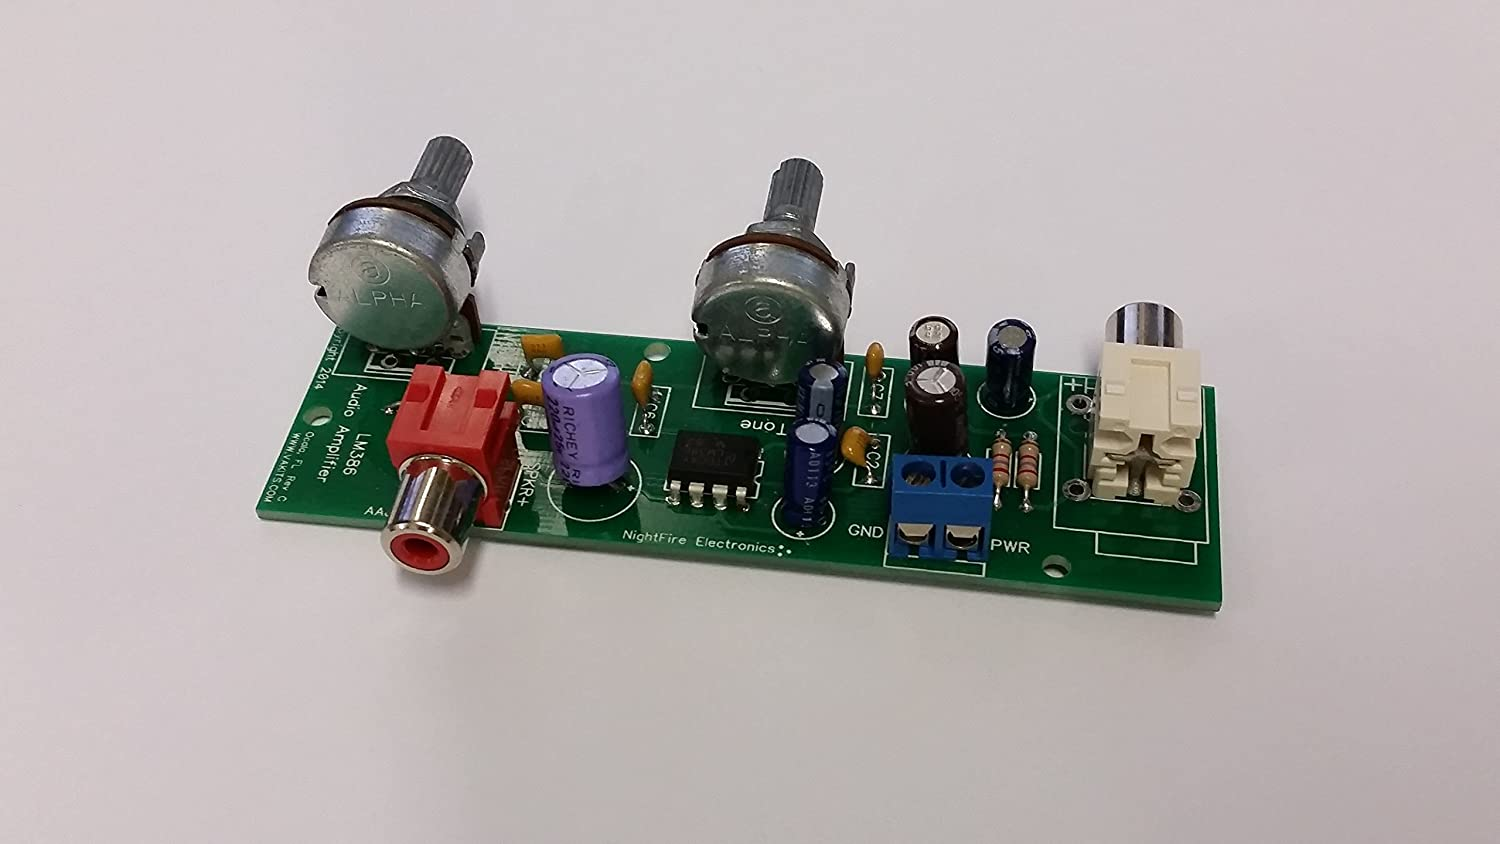 Nightfire Lm386 Audio Amplifier Kit Built Tested Simple Circuit Using Electronics